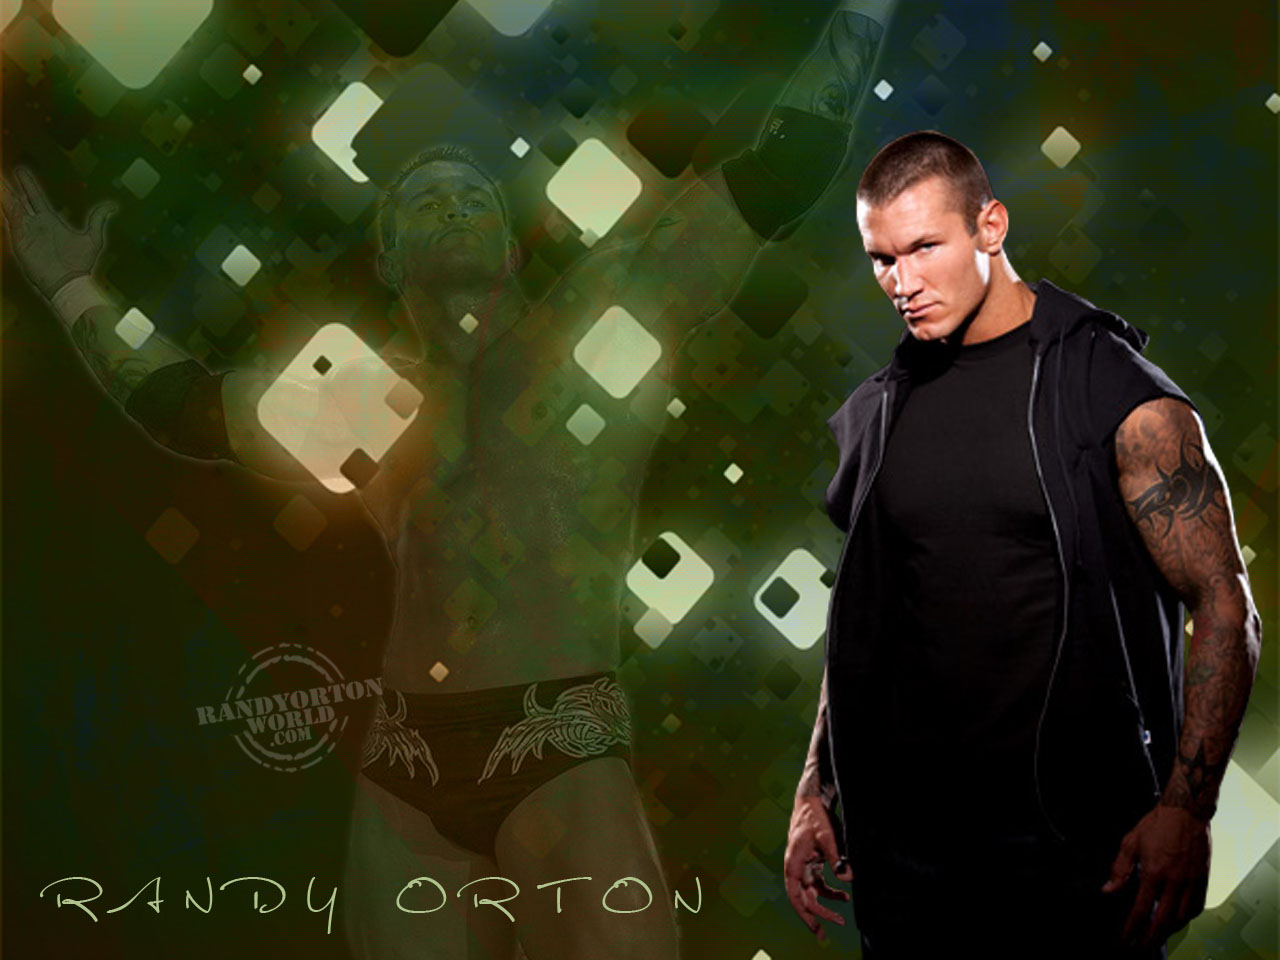 WWE CHAMPION 2011 randy orton wwe champion wallpaper 1280x960